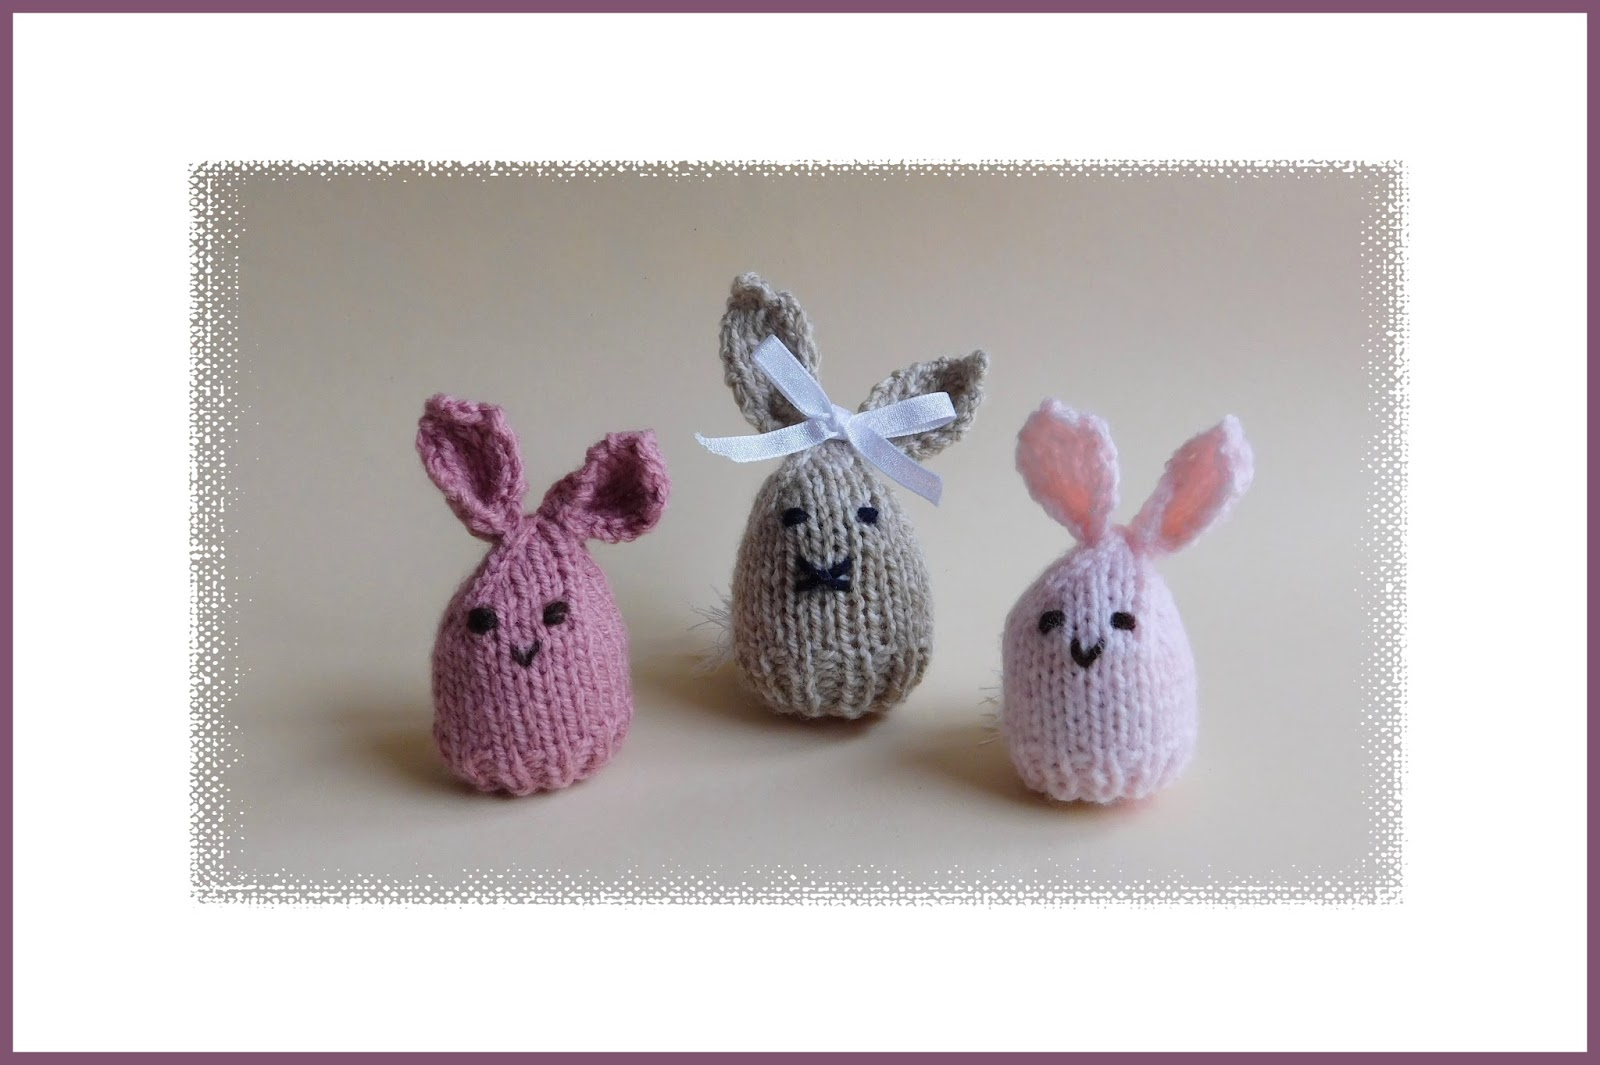 Mariannas lazy daisy days easter bunny egg cosy these will be cute little easter gifts some with a chocolate egg inside others with a large hard boiled egg i have very happy memories of decorating negle Choice Image